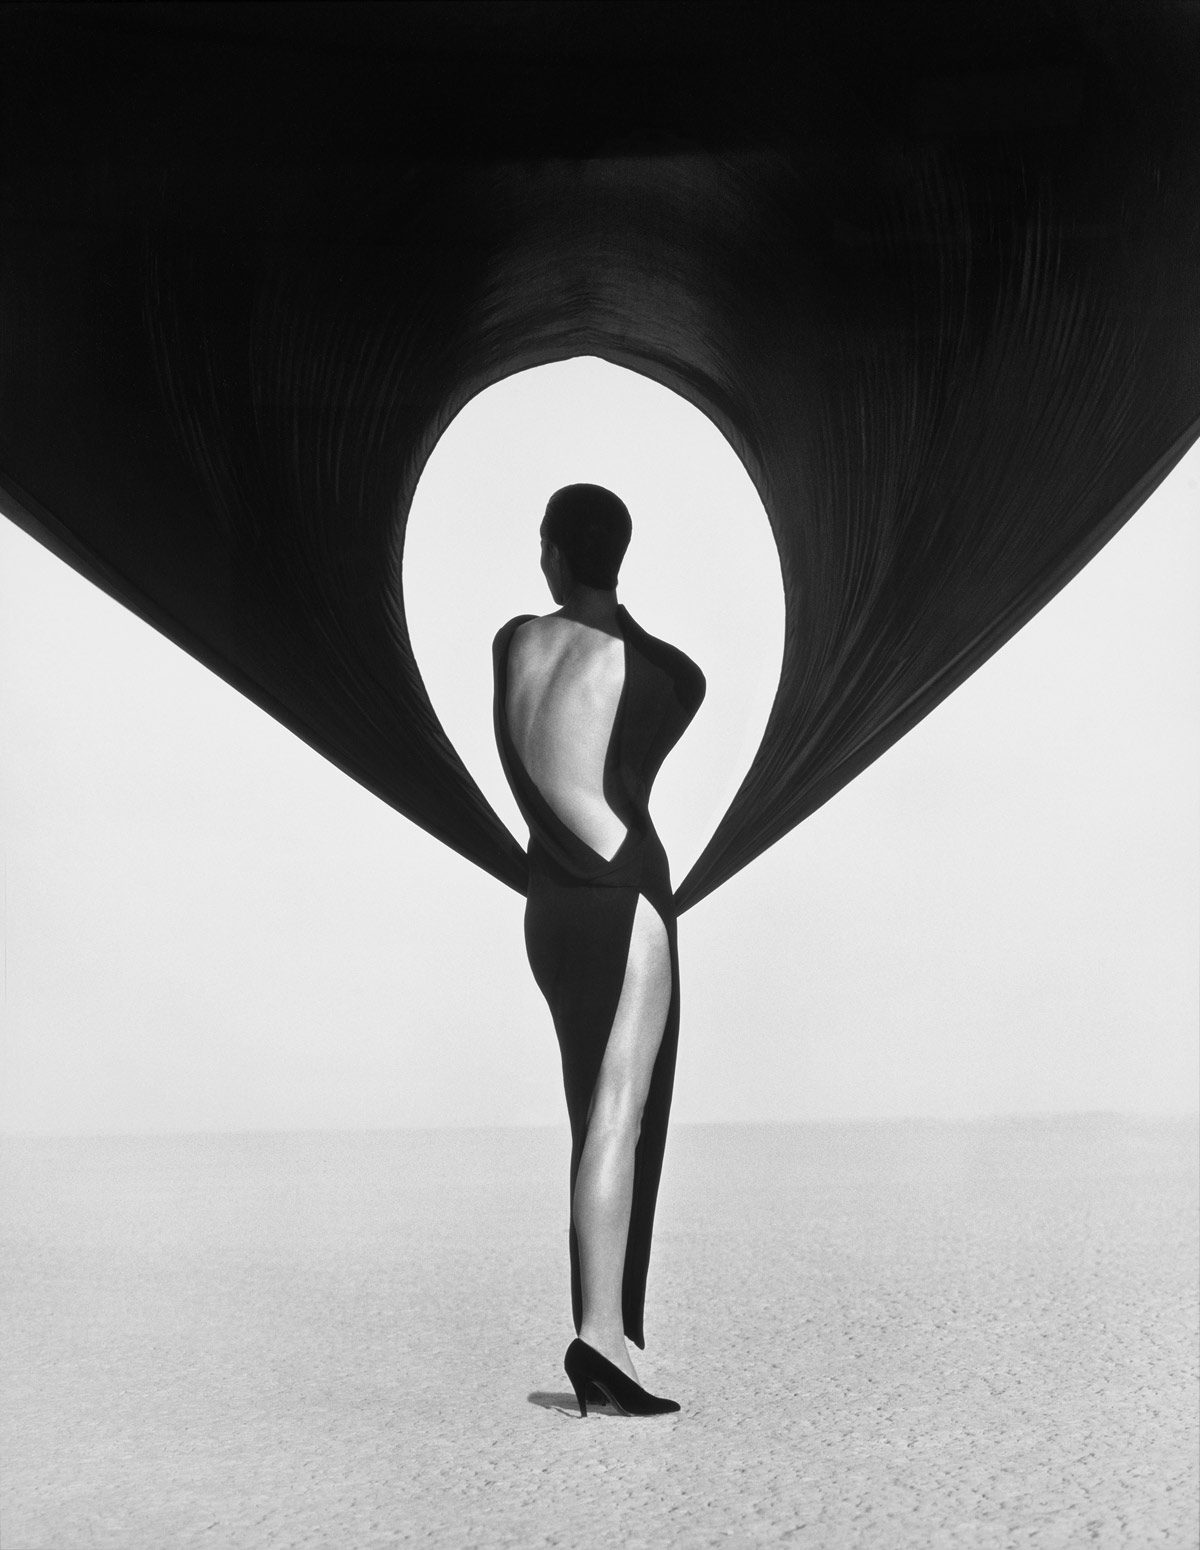 Herb Ritts  (American, 1952-2002)  Versace Dress, Back View, El Mirage  1990 Gelatin silver print Museum of Fine Arts, Boston Gift of Herb Ritts © Herb Ritts Foundation Photograph © Museum of Fine Arts, Boston